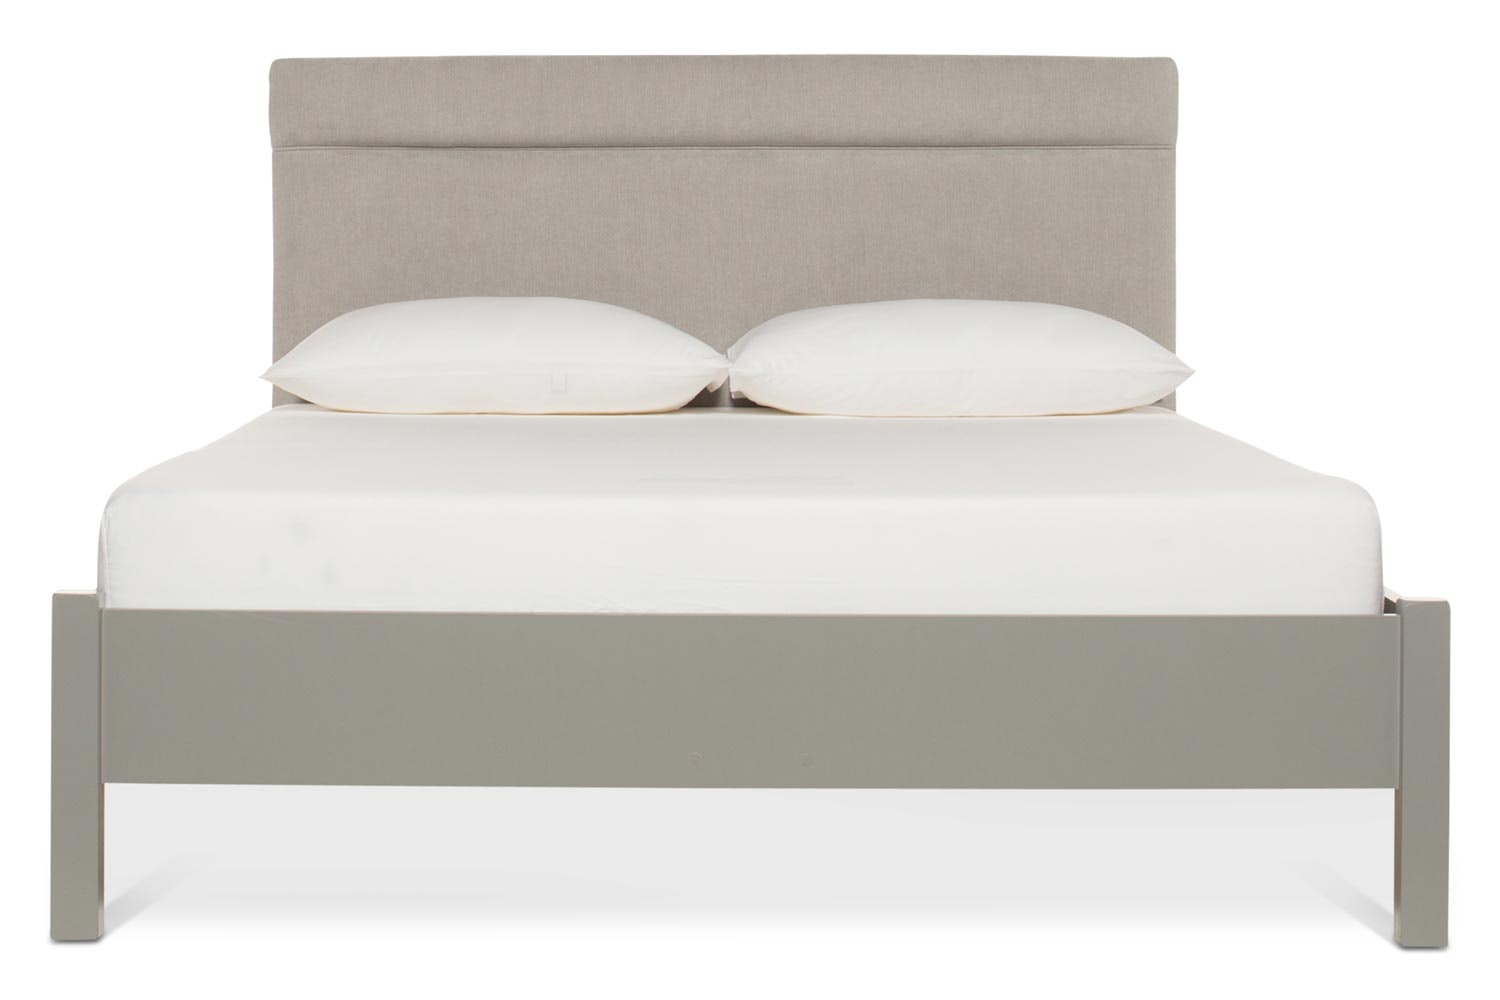 Emily Loft Grey Bed Frame | 6FT | Elton Headboard